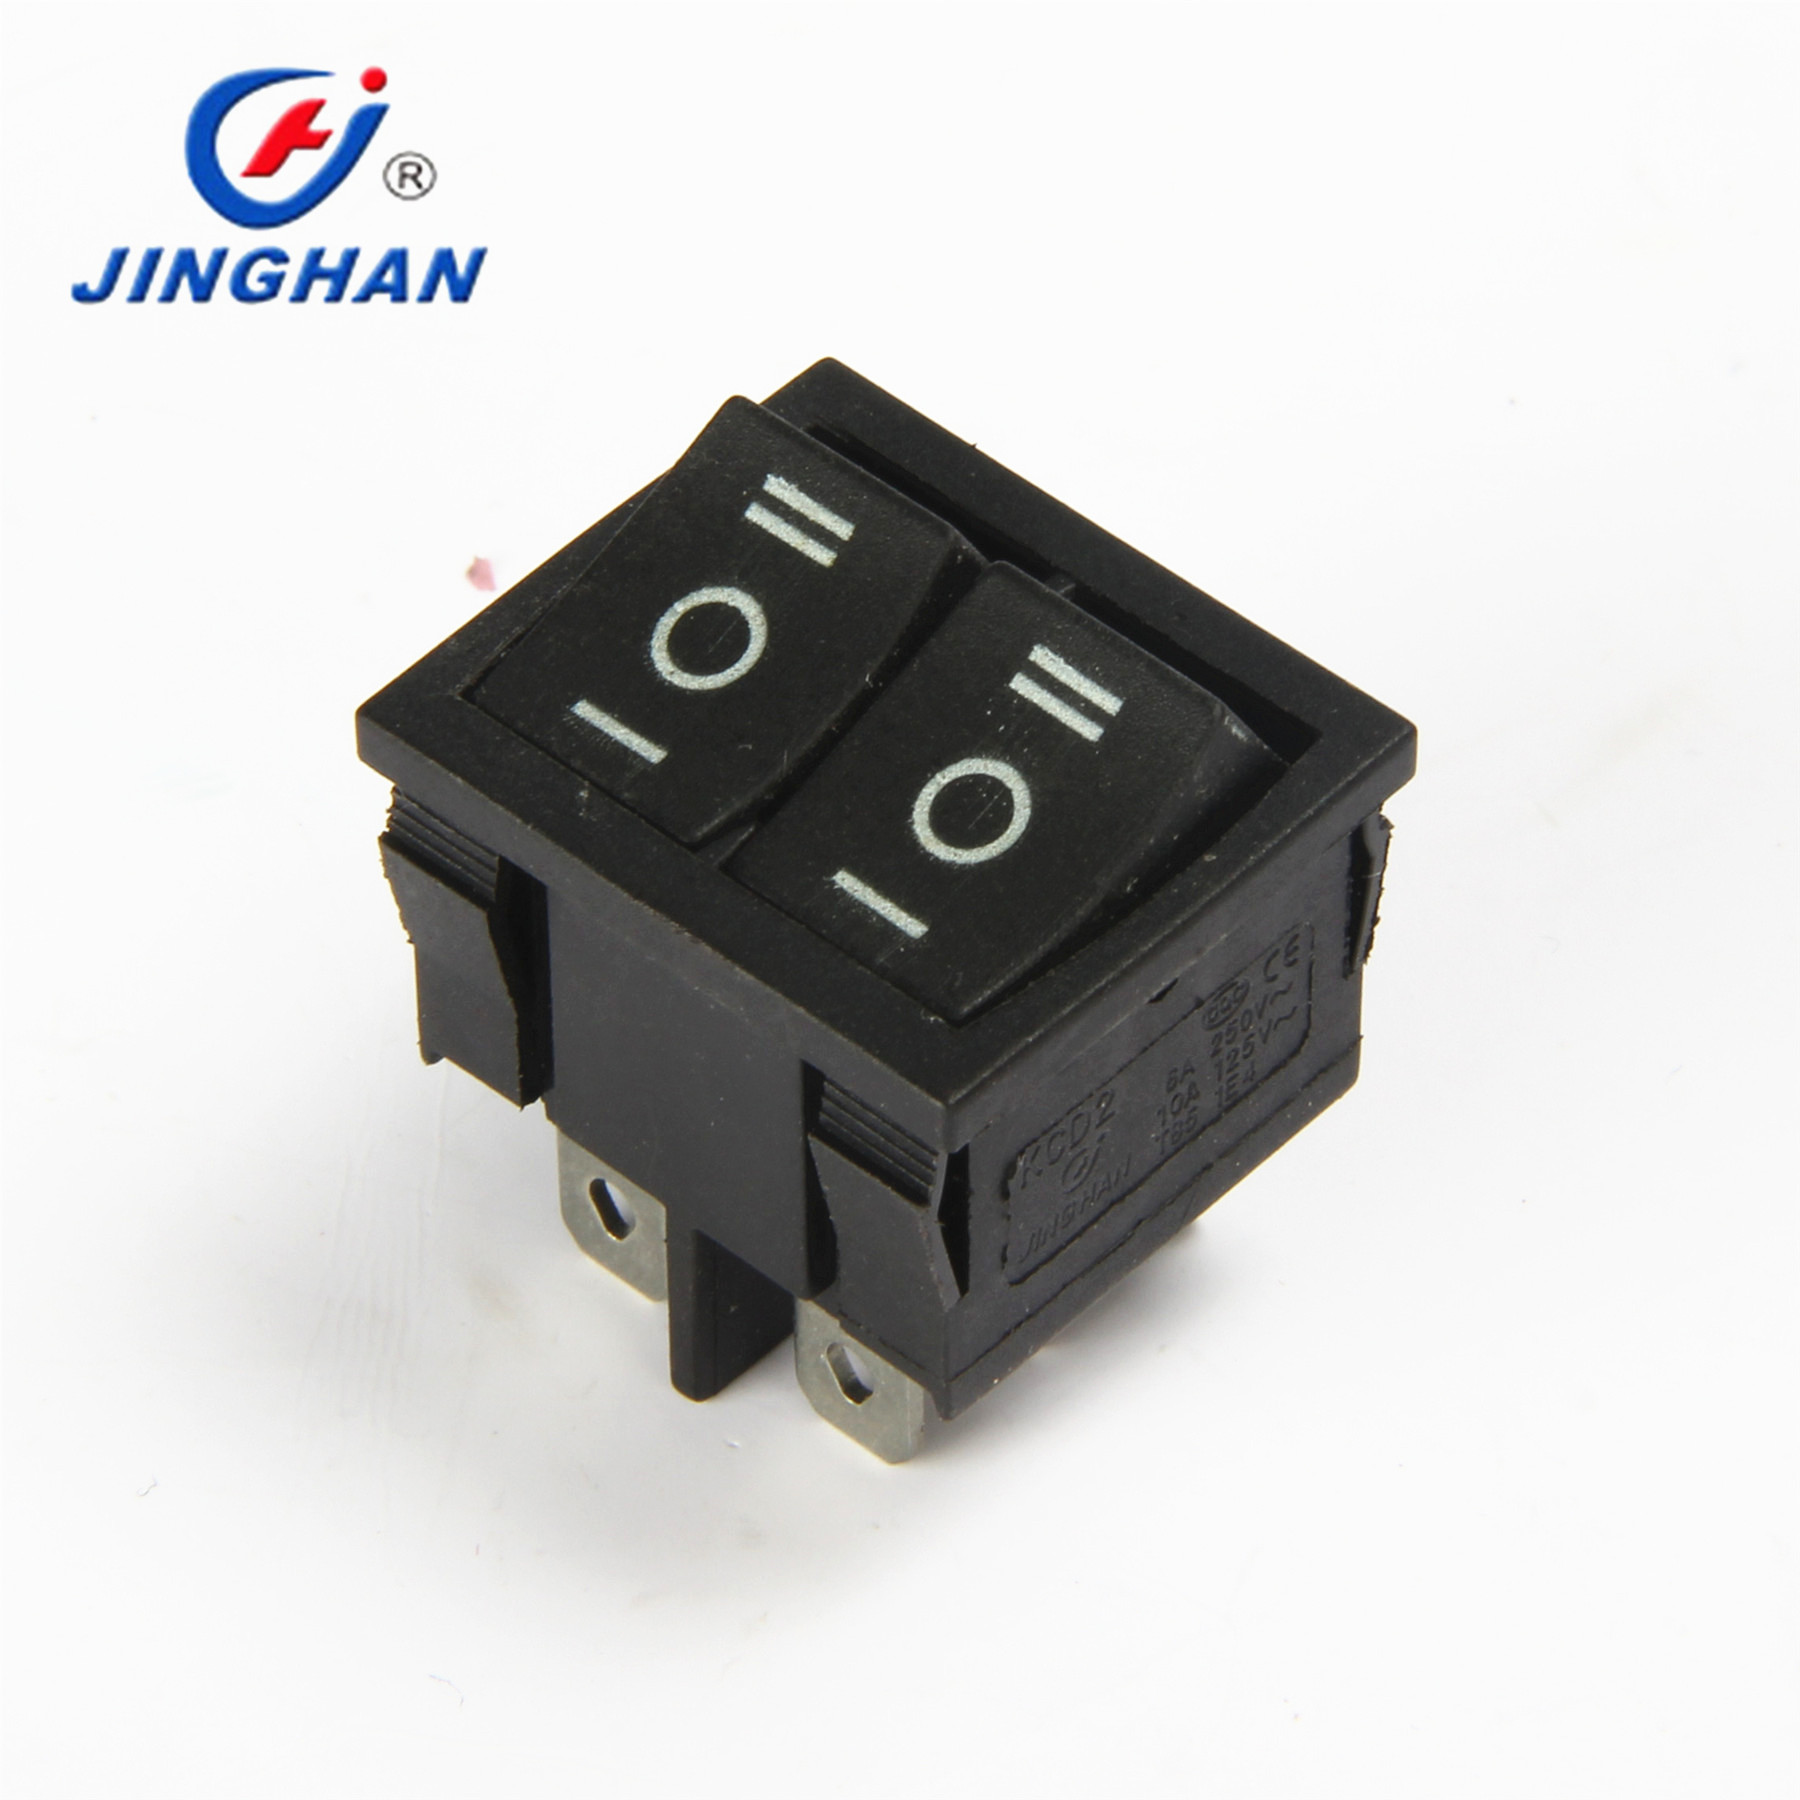 hight resolution of rocker switch t105 250v rocker switch t105 250v suppliers and manufacturers at alibaba com